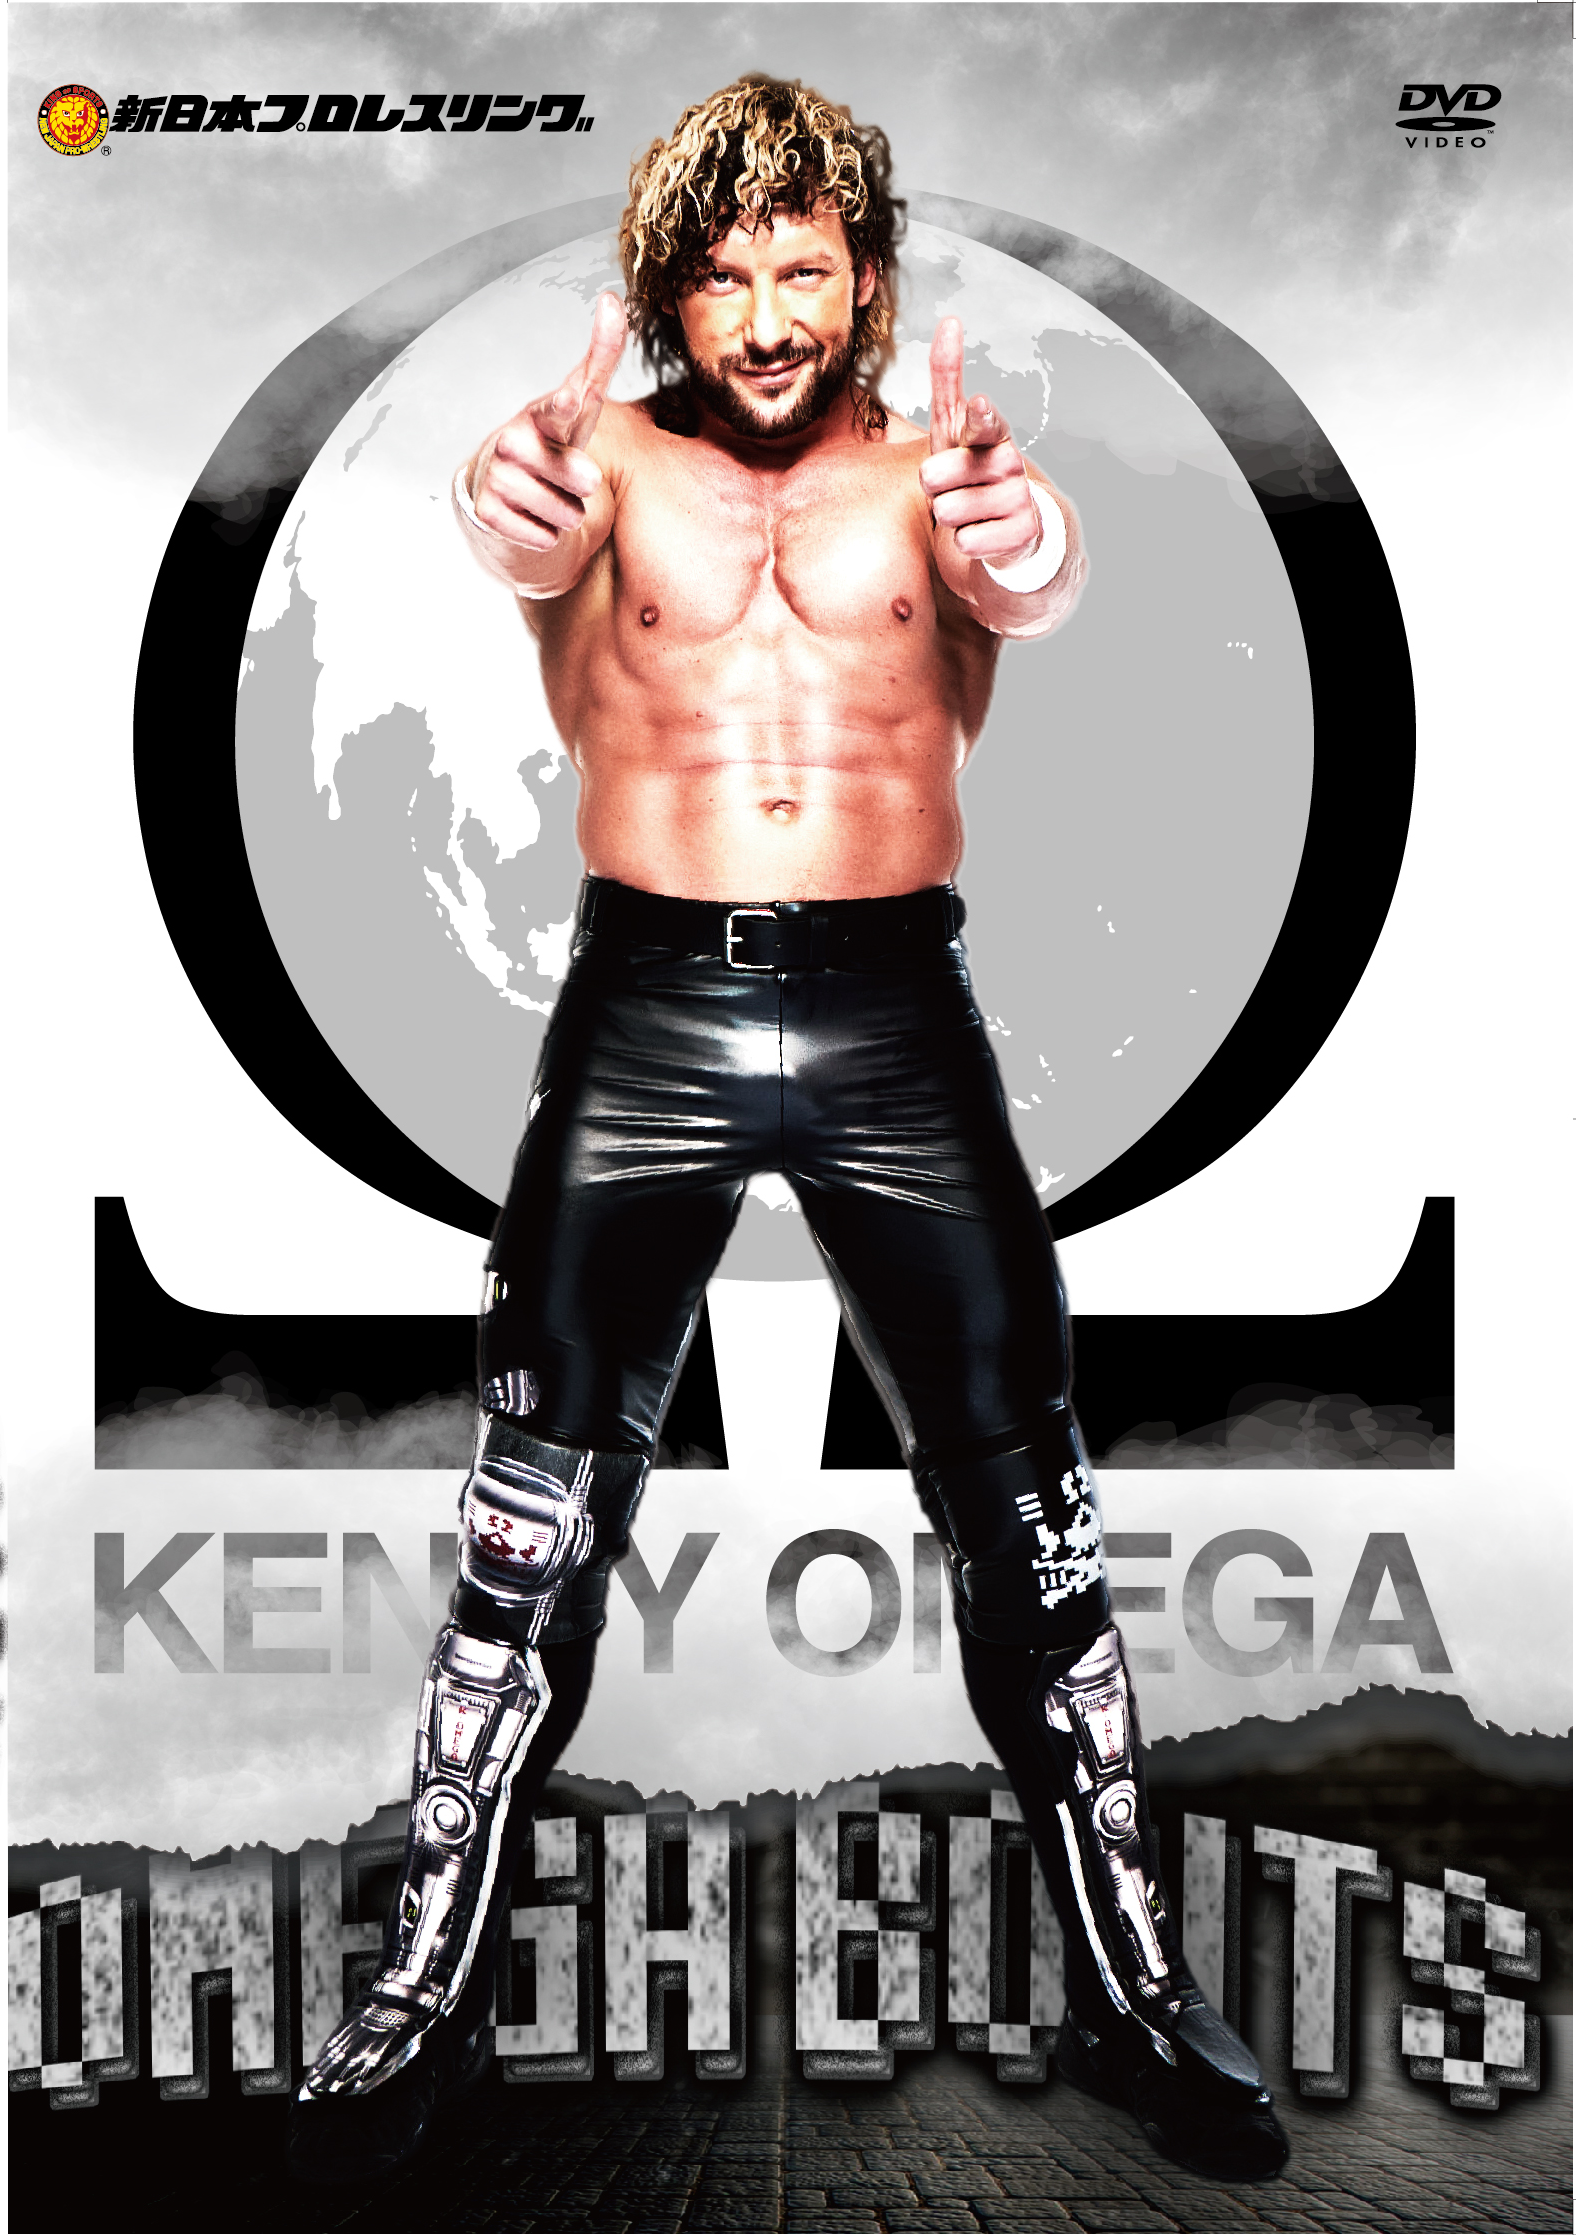 KENNY OMEGA – Ω(OMEGA) BOUTS -